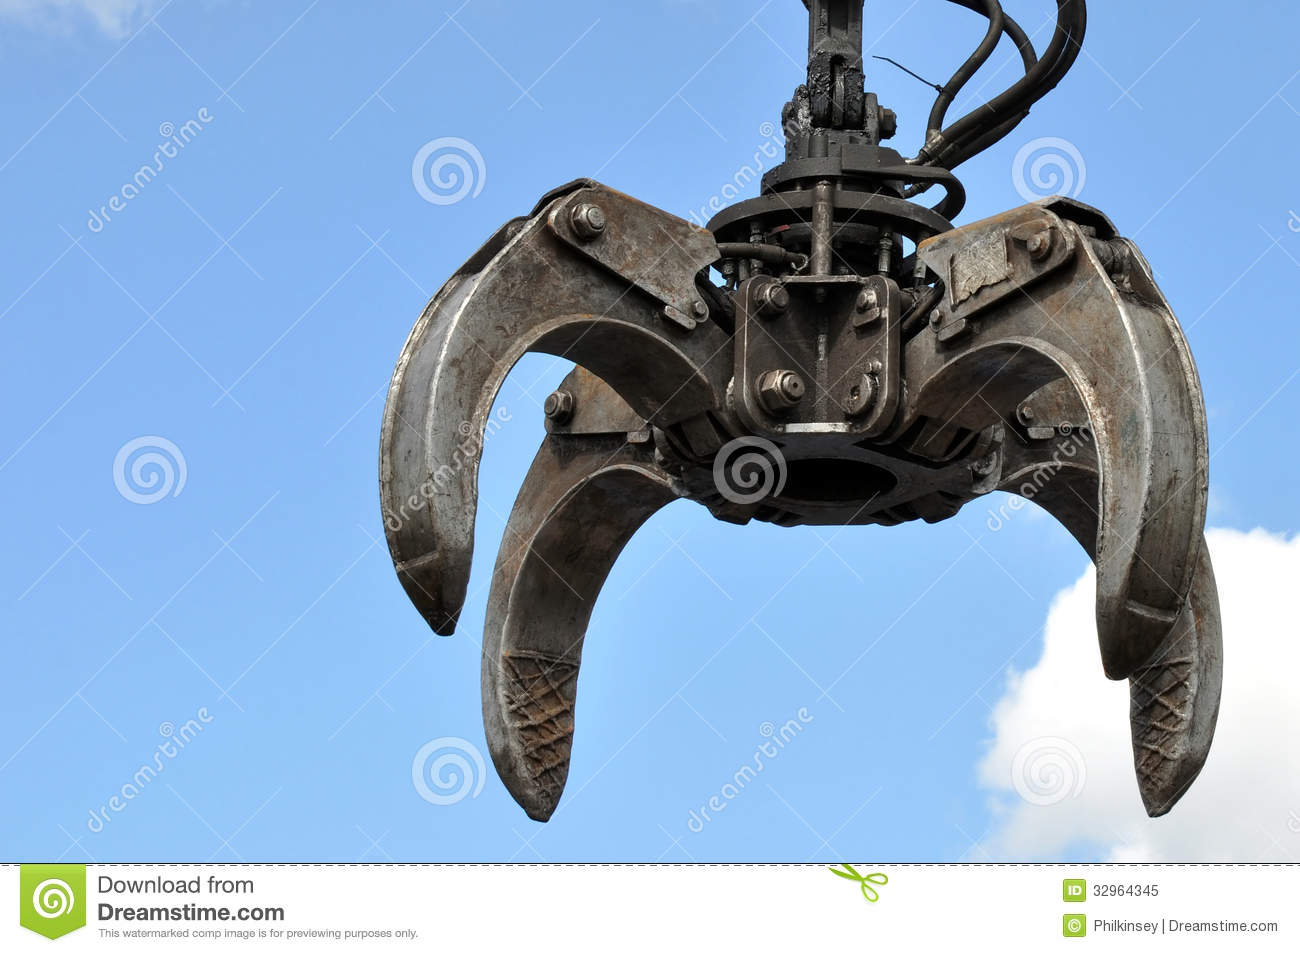 Hydraulic Claw Crane Royalty Free Stock Photo - Image ...